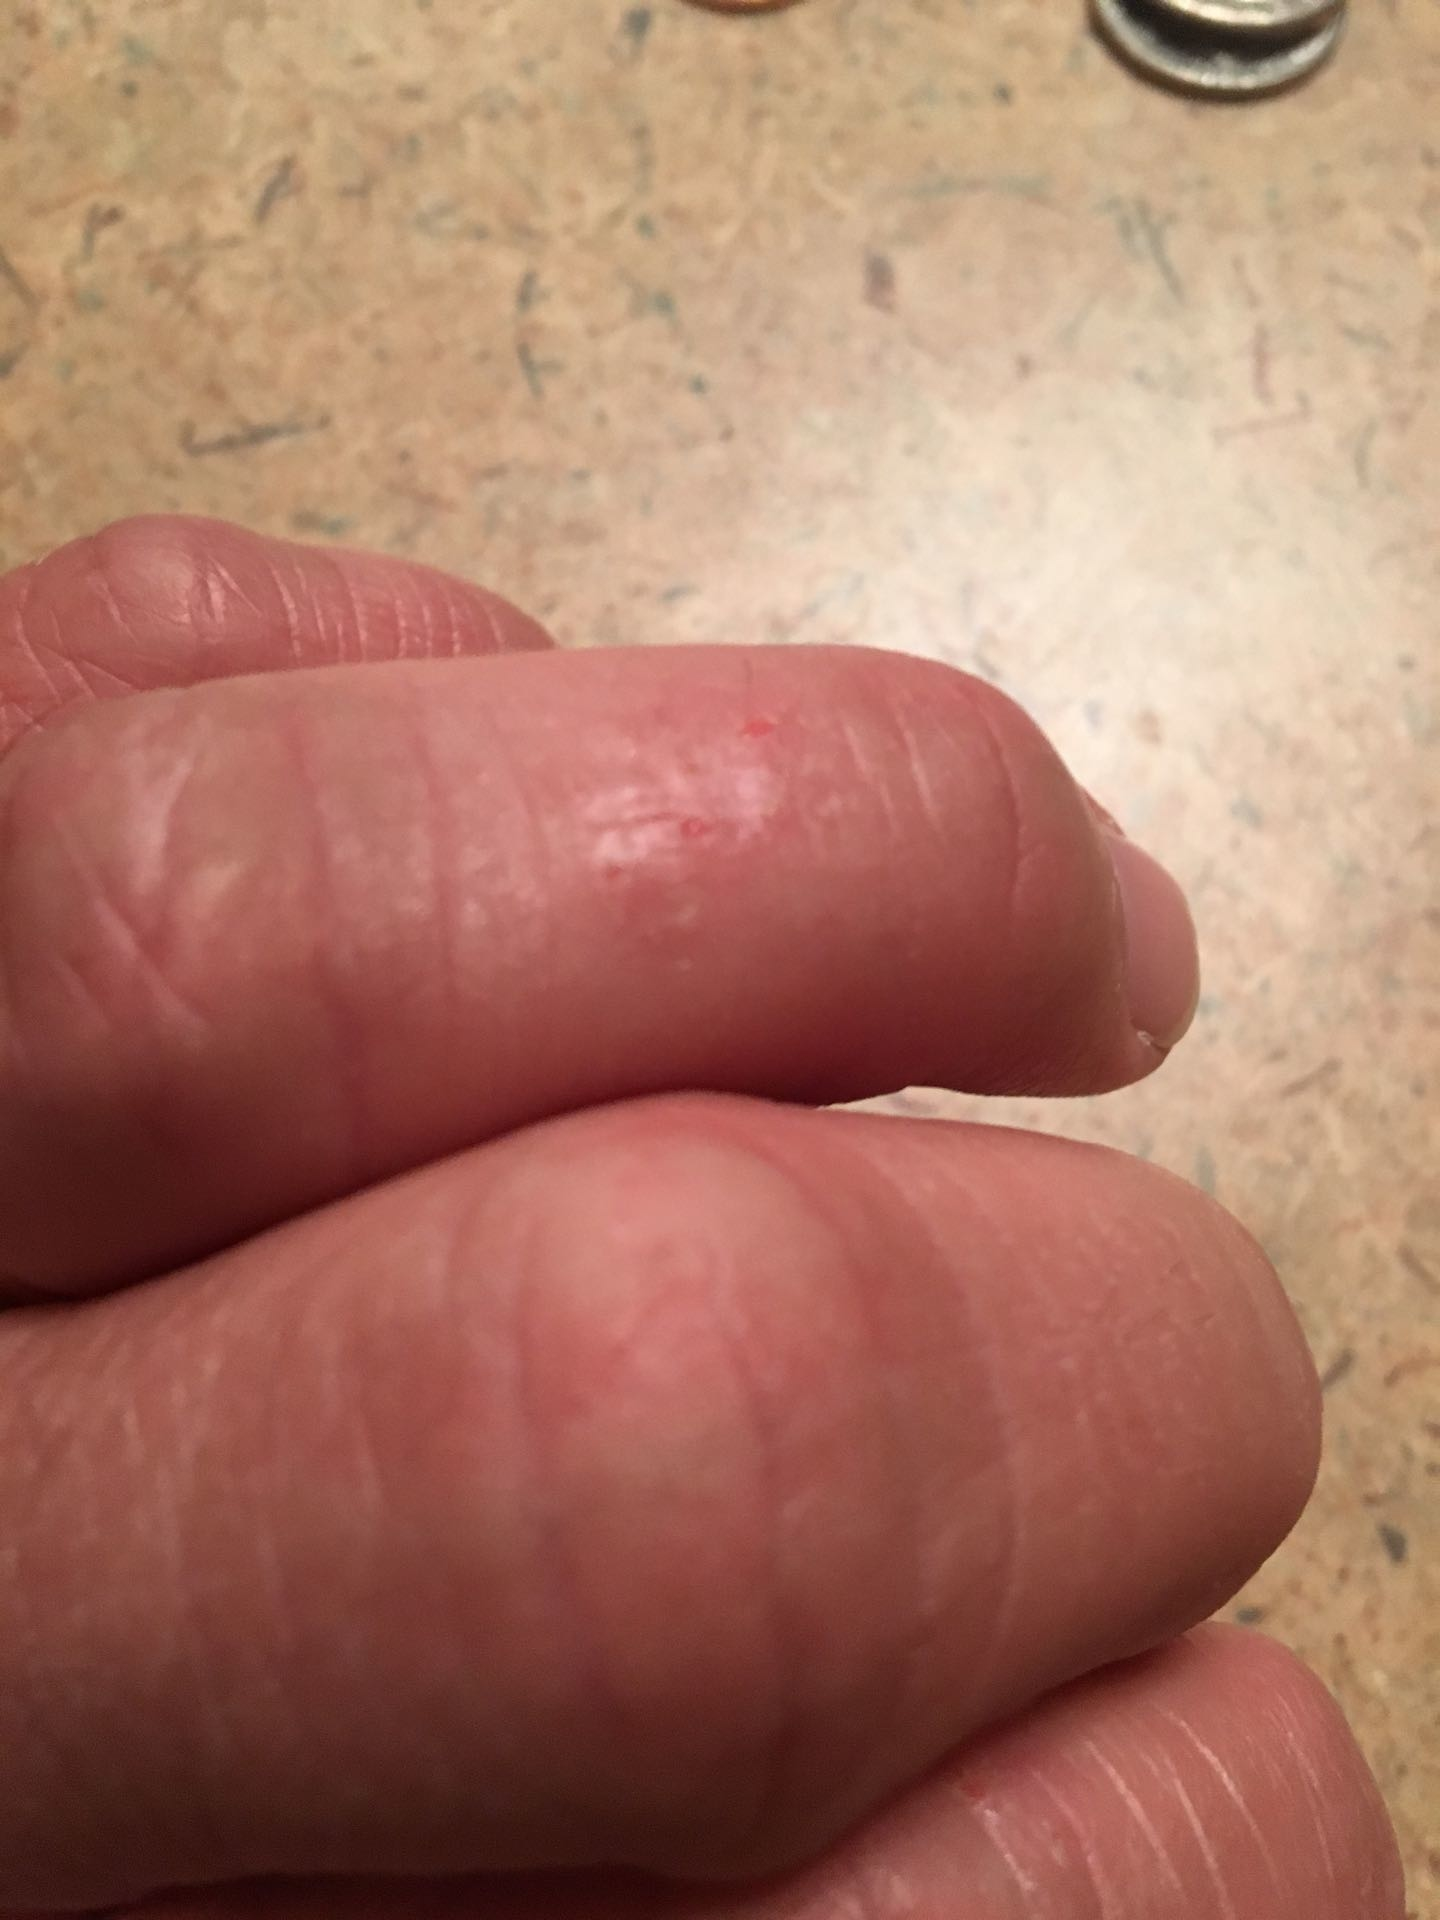 Eczema Pictures On Fingers Atopic Dermatitis Symptoms